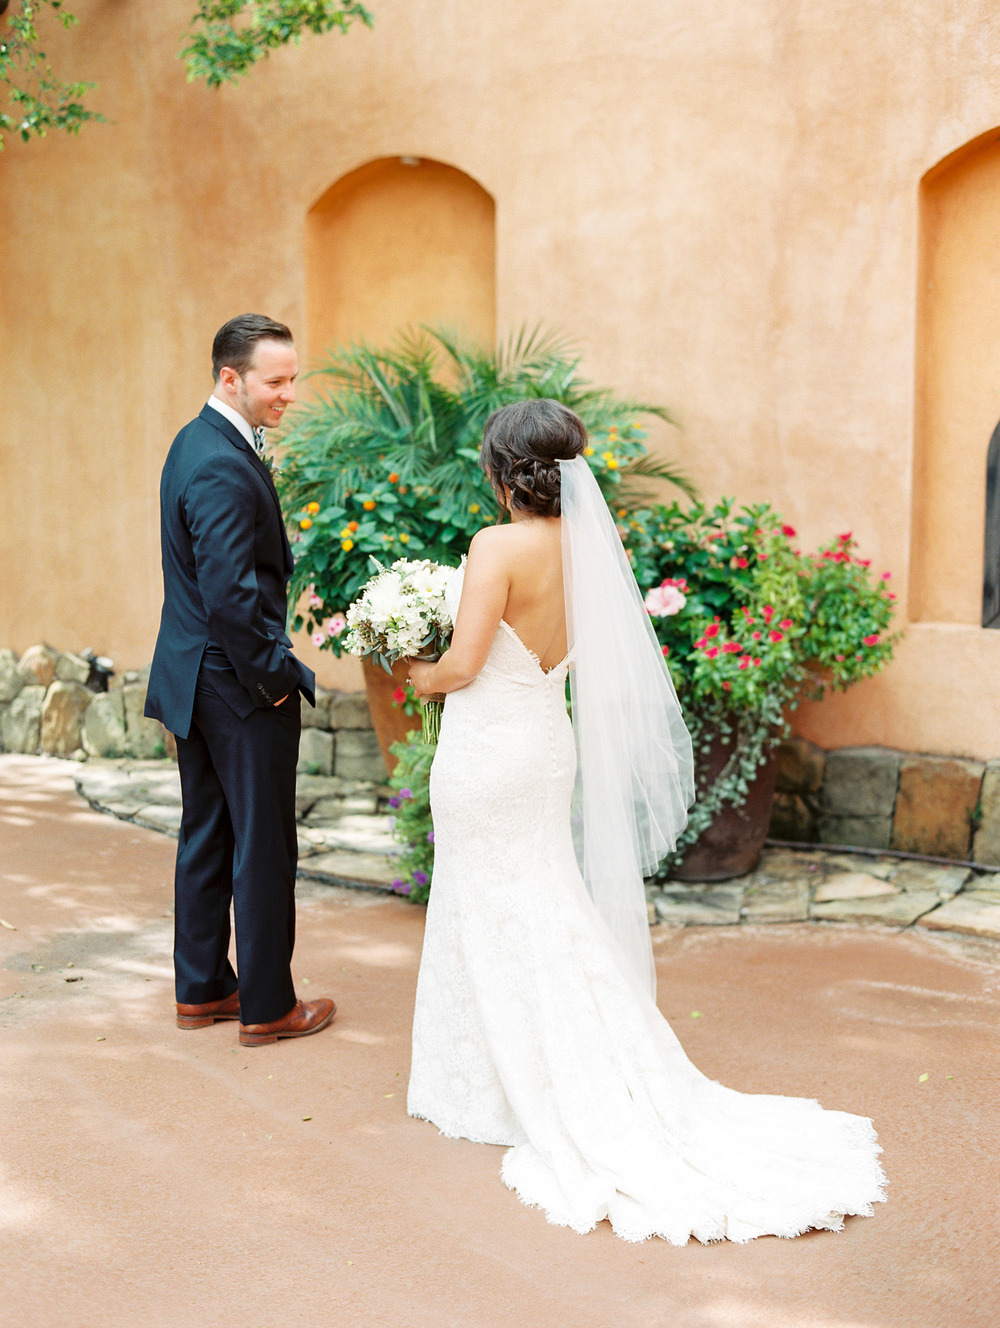 Dana Fernandez Photography Agave Road Agave Estates Houston Texas Wedding Photographer Destination Southwest Film-23.jpg